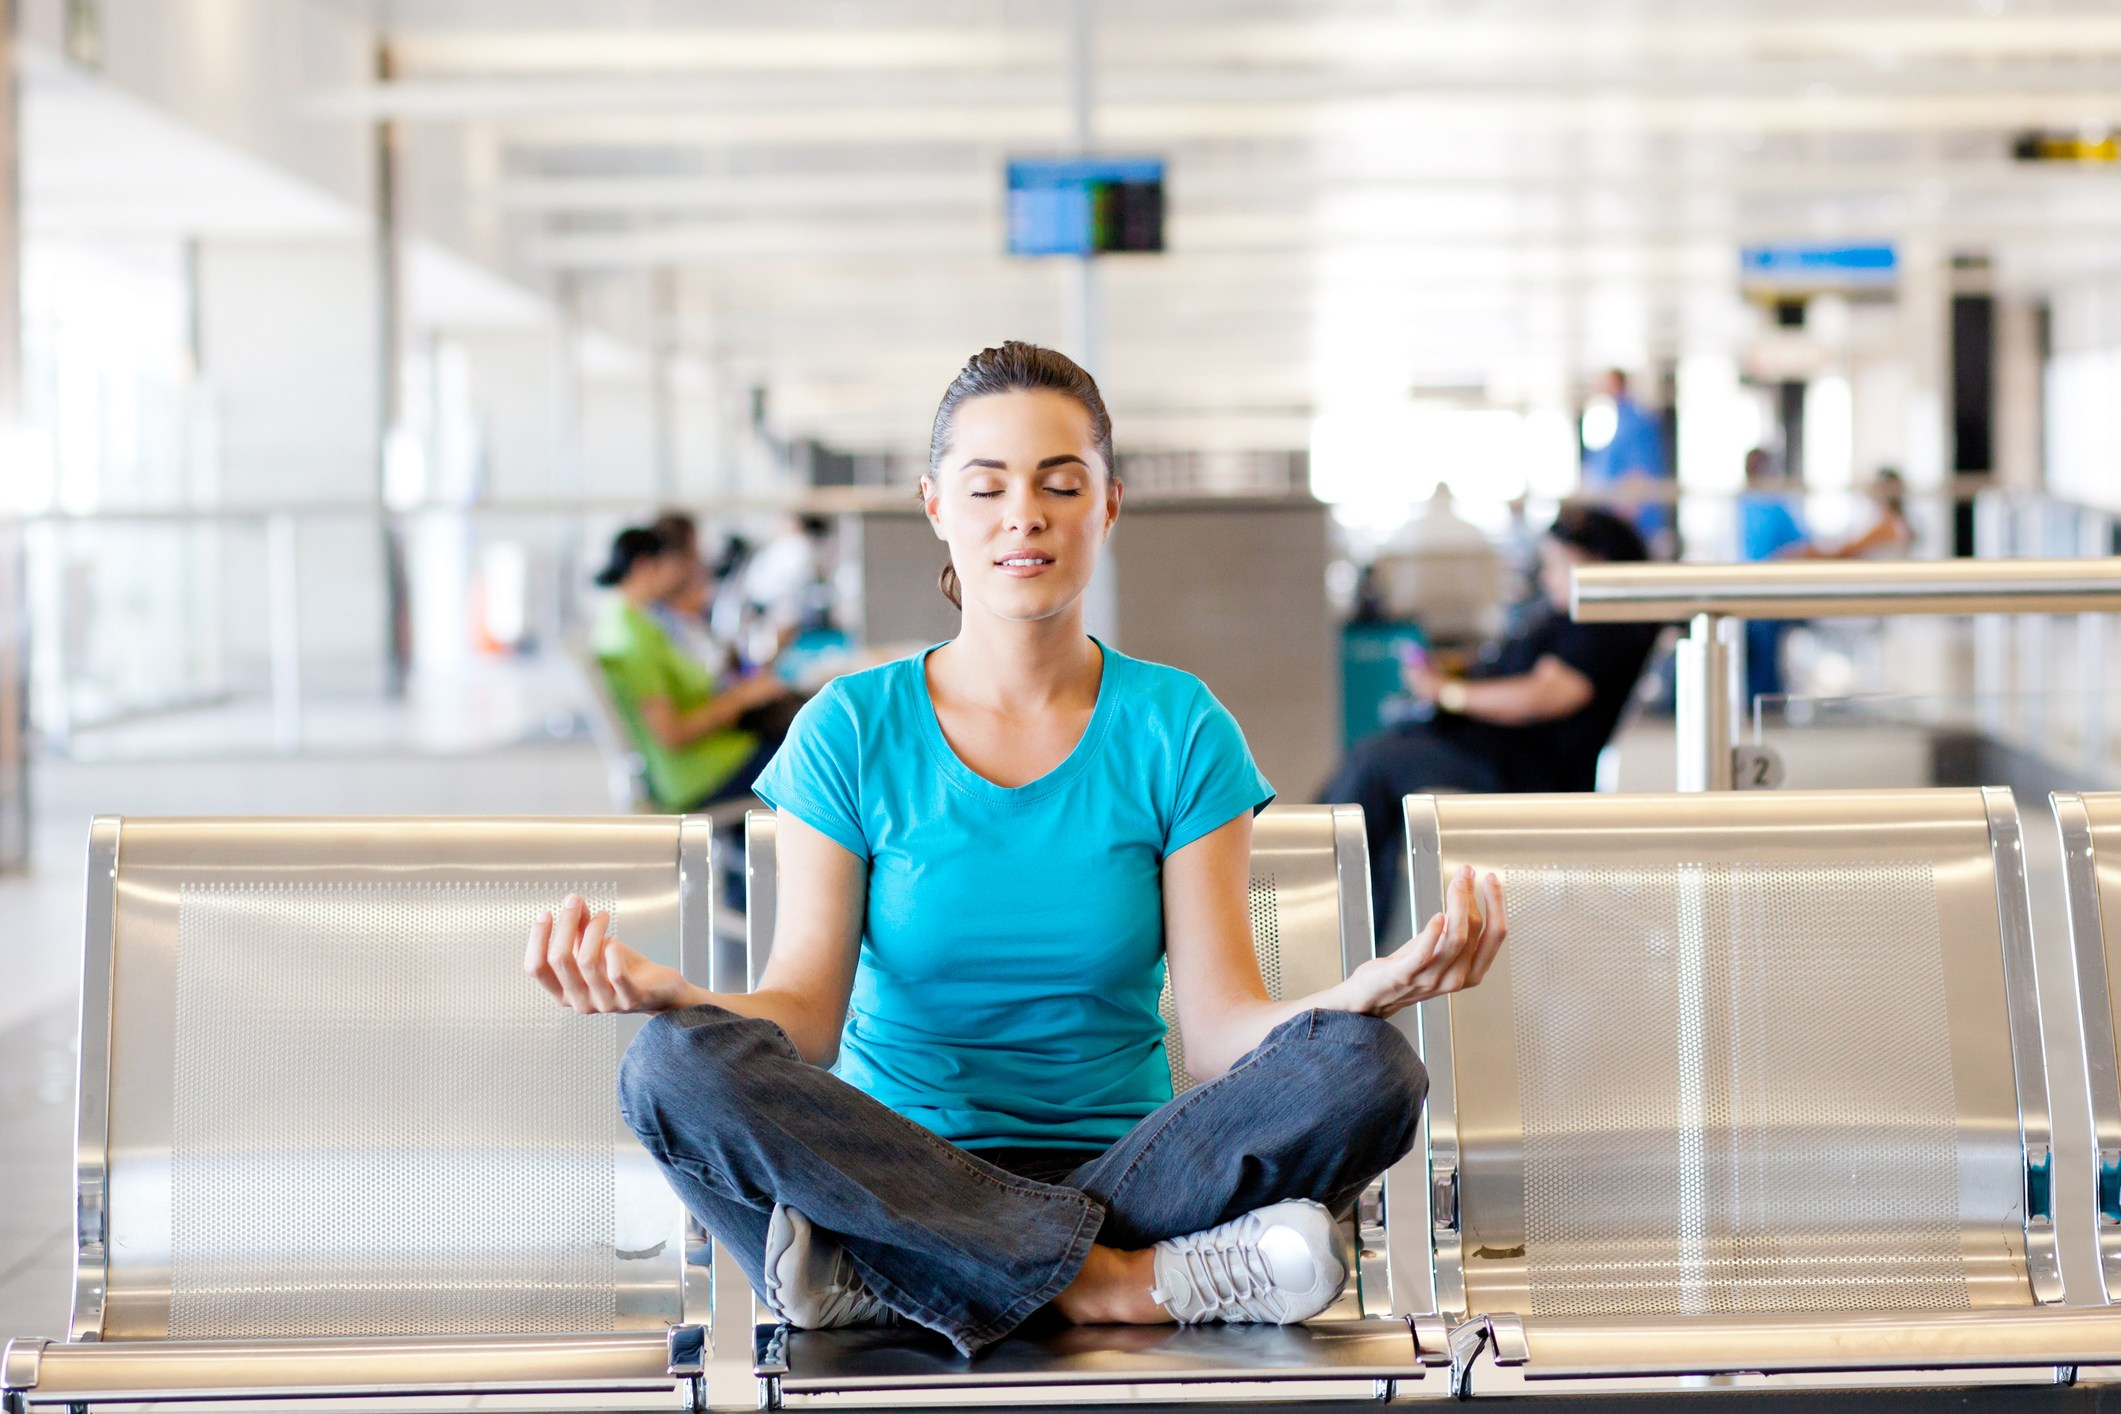 woman does yoga in an airport terminal